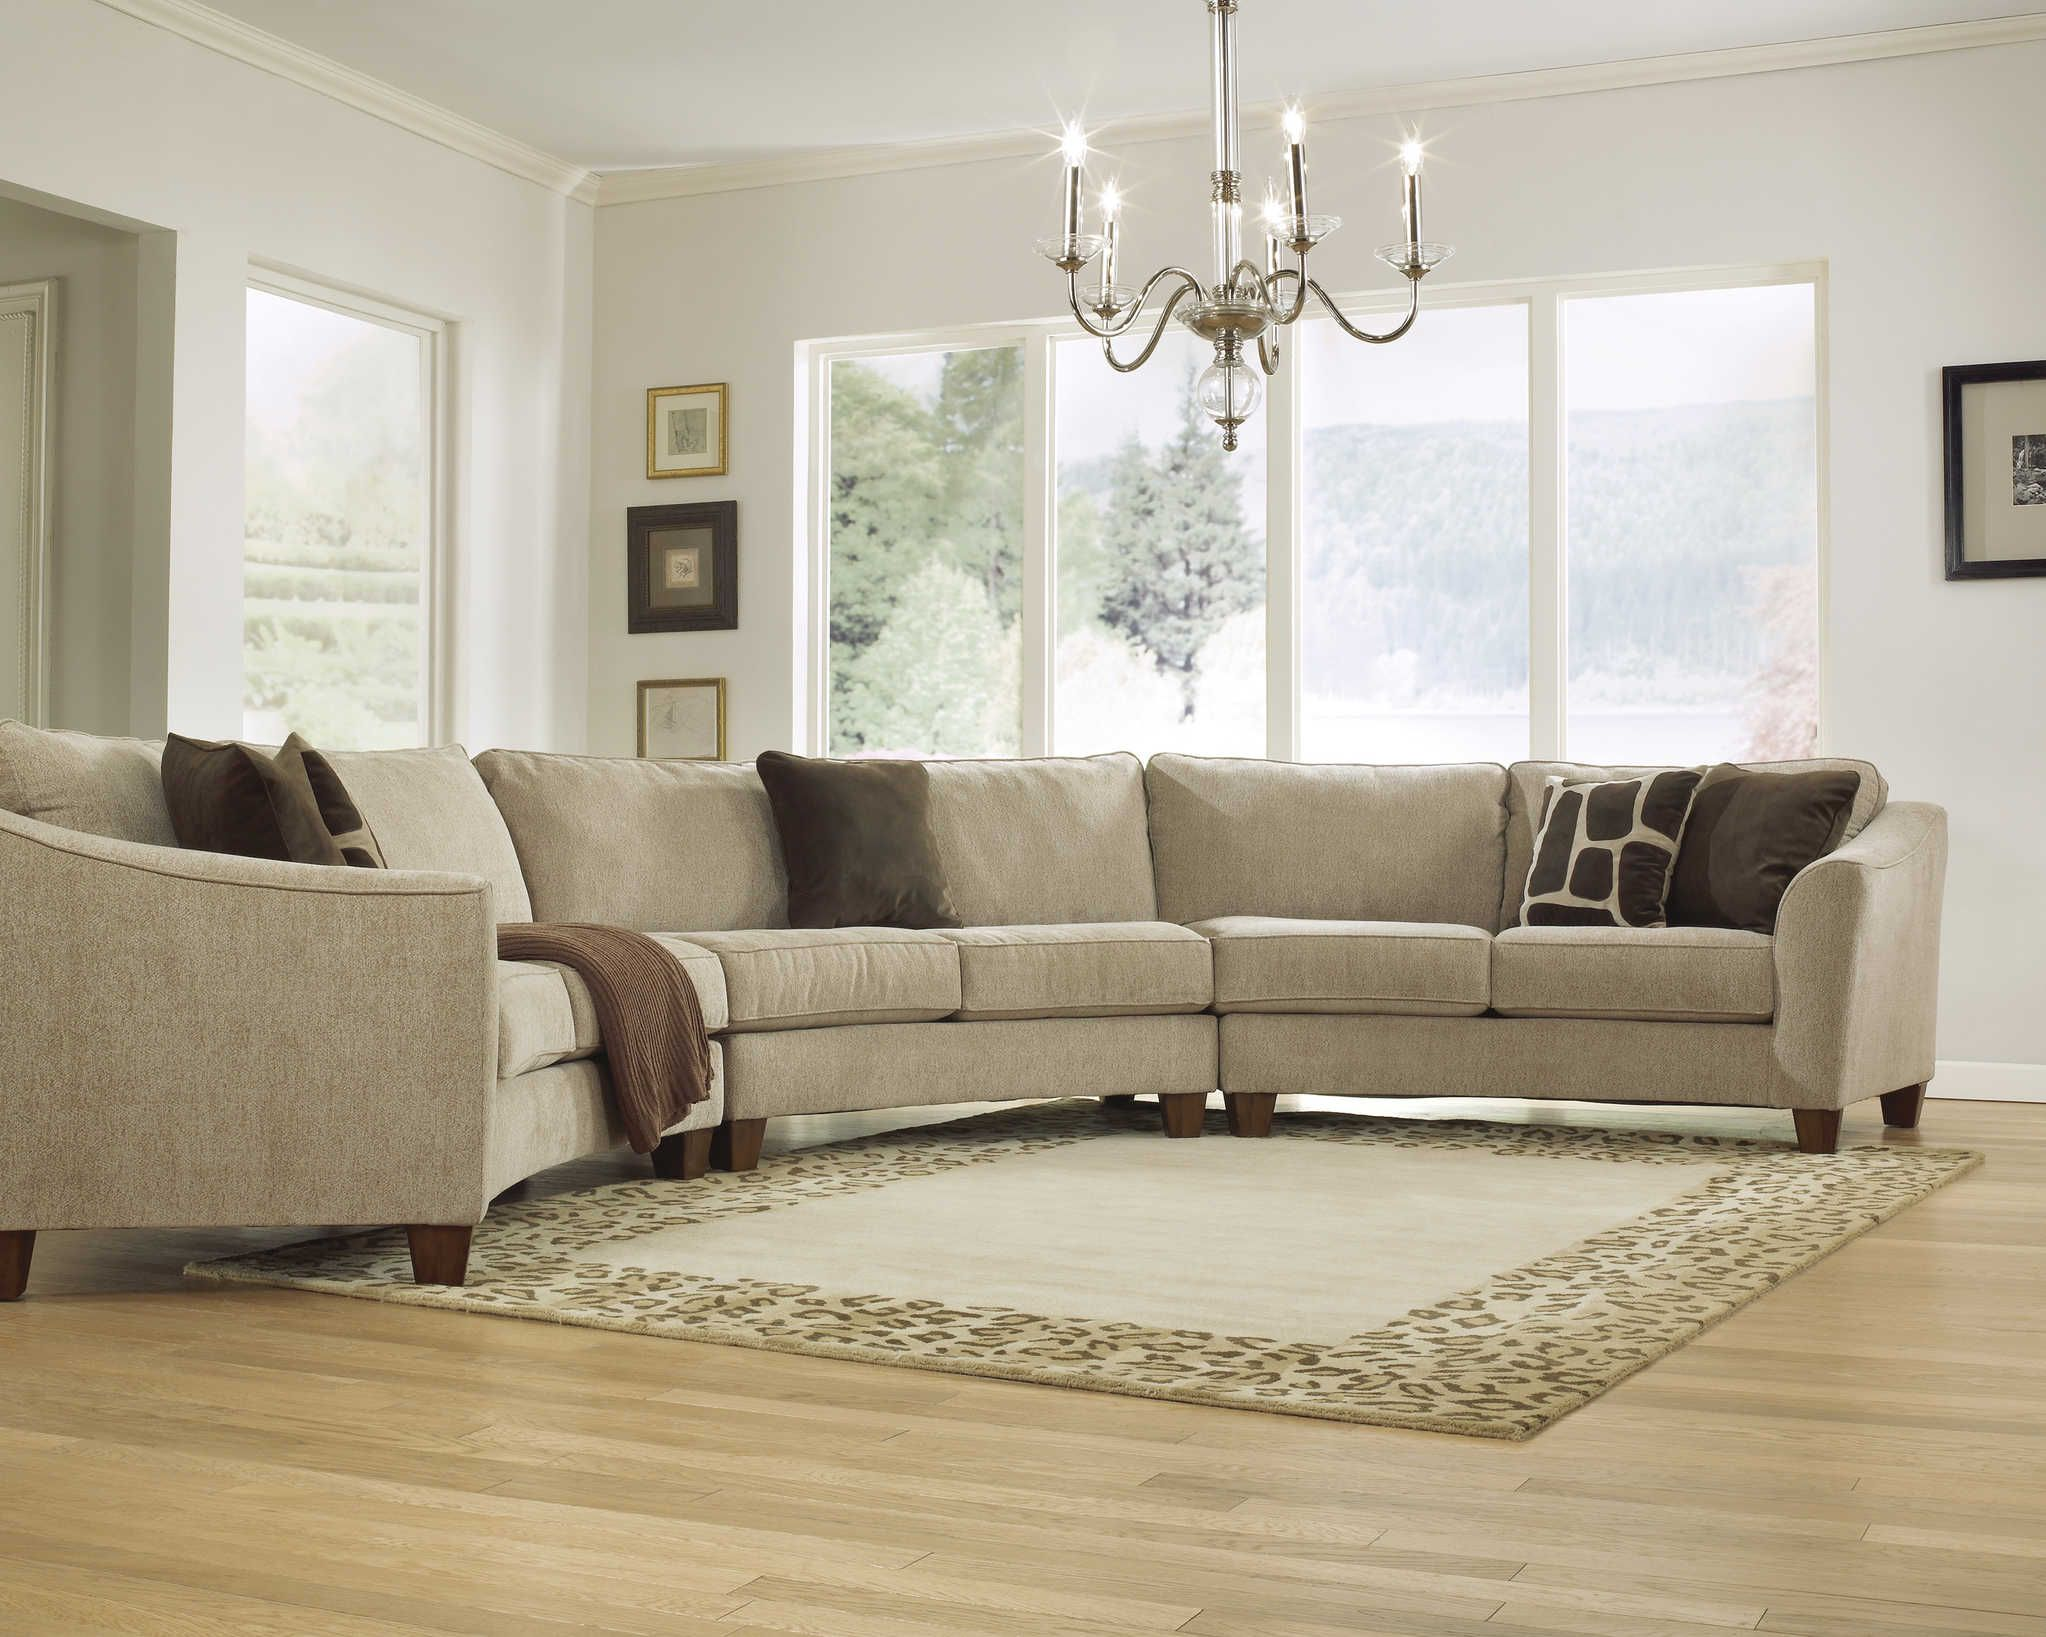 Living Room Designs With Sectionals Beauteous 2959Curvaceous Beauty  Curved Sectional Sofa Set In Classic Design Ideas